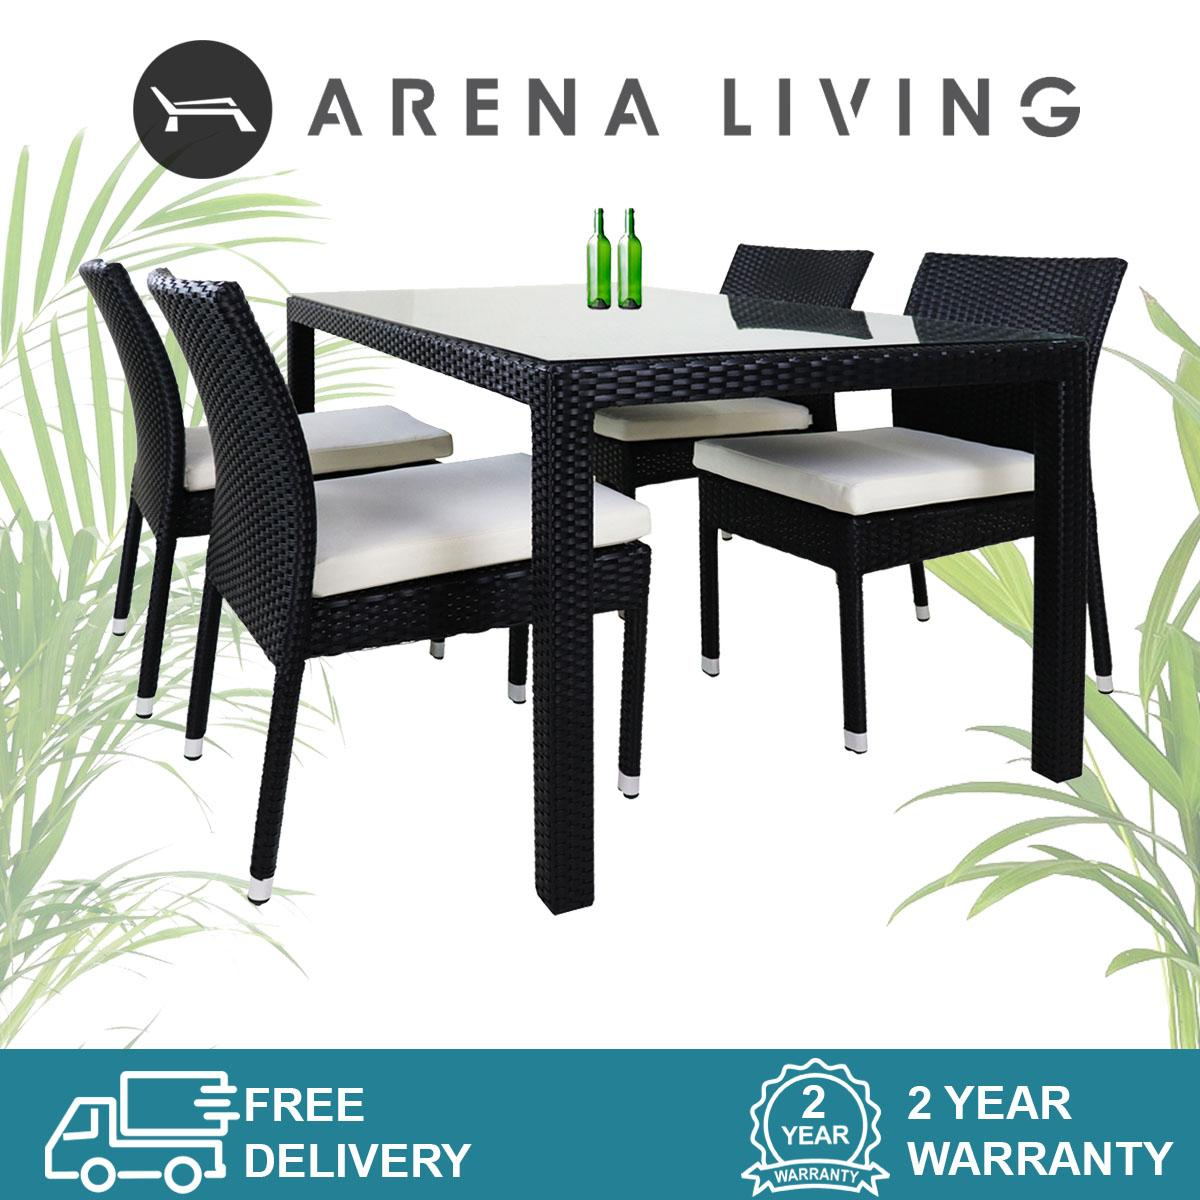 Casa 4 Chair Dining Set Set by Arena Living - 2 Year Warranty Outdoor Furniture